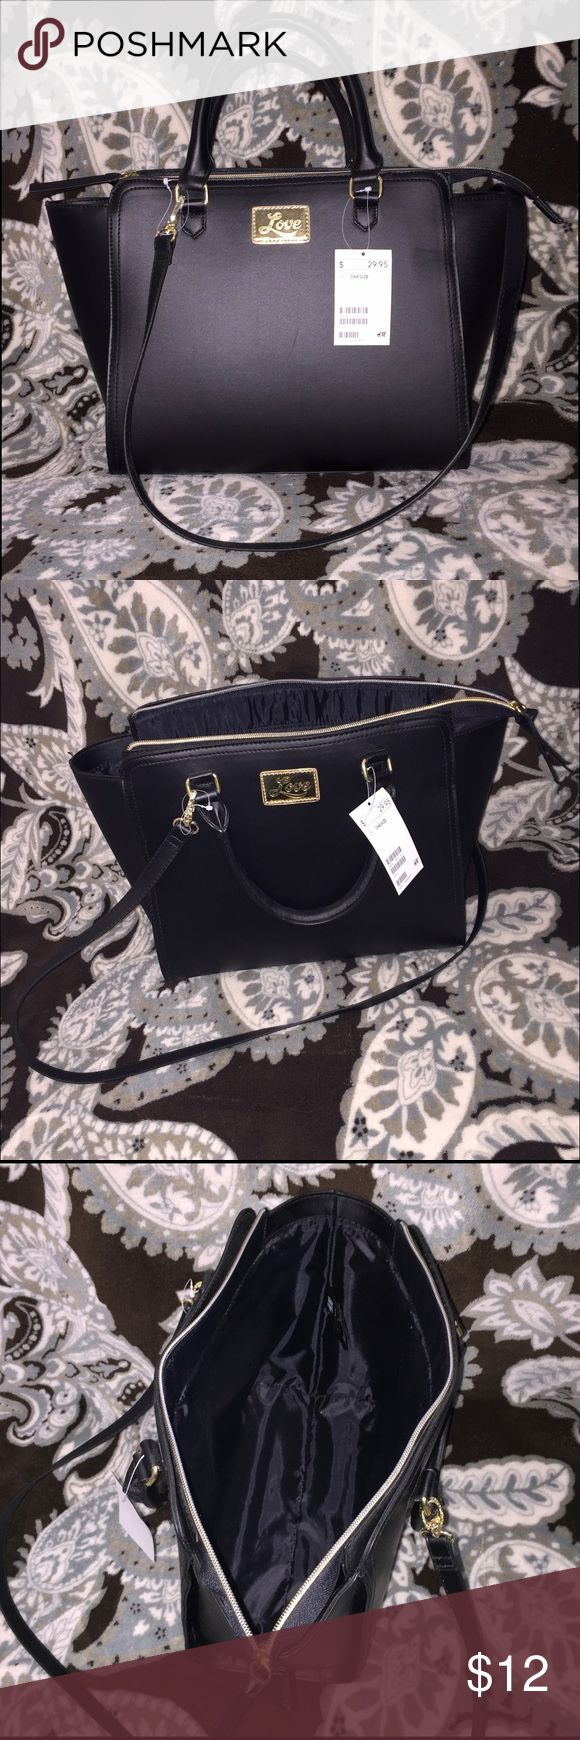 NWT 🔖H&M purse black & gold In nearly perfect condition 👌🏼👜 purse from H&M. Gold zipper and hardware. Has a Removable shoulder strap. The inside is lined in black nylon. Measures about 15 1/2 inches across and just over 10 inches high. 5 inch depth. Has the slightest scuff it's in the pic but you can hardly see it!) H&M Bags Shoulder Bags